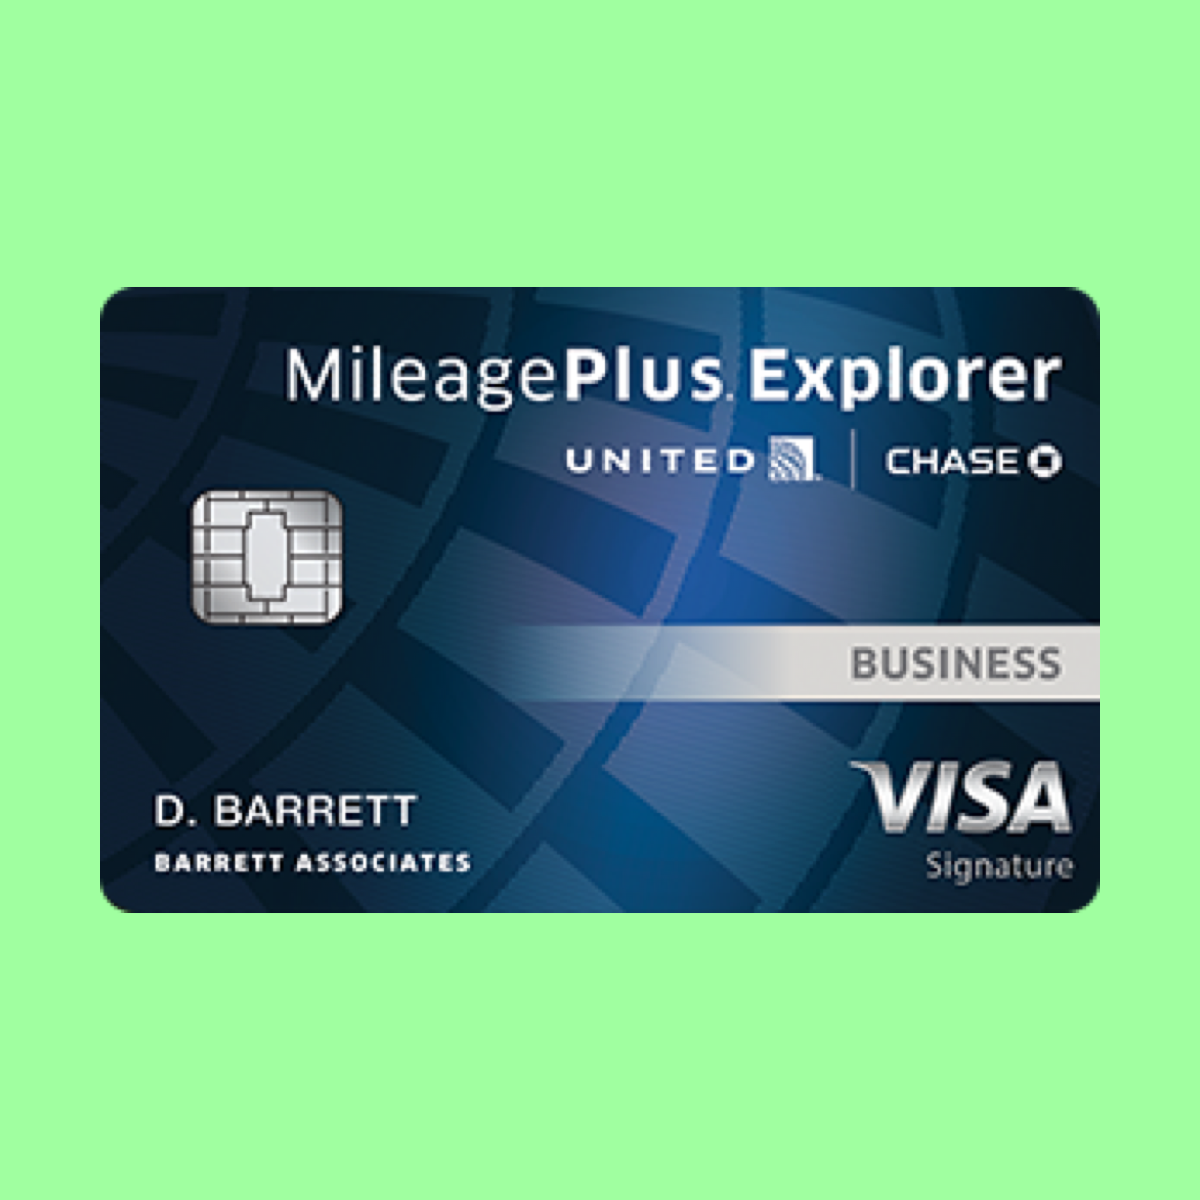 United Explorer Business Card The Point Calculator Travel Cards Compare Cards The Unit